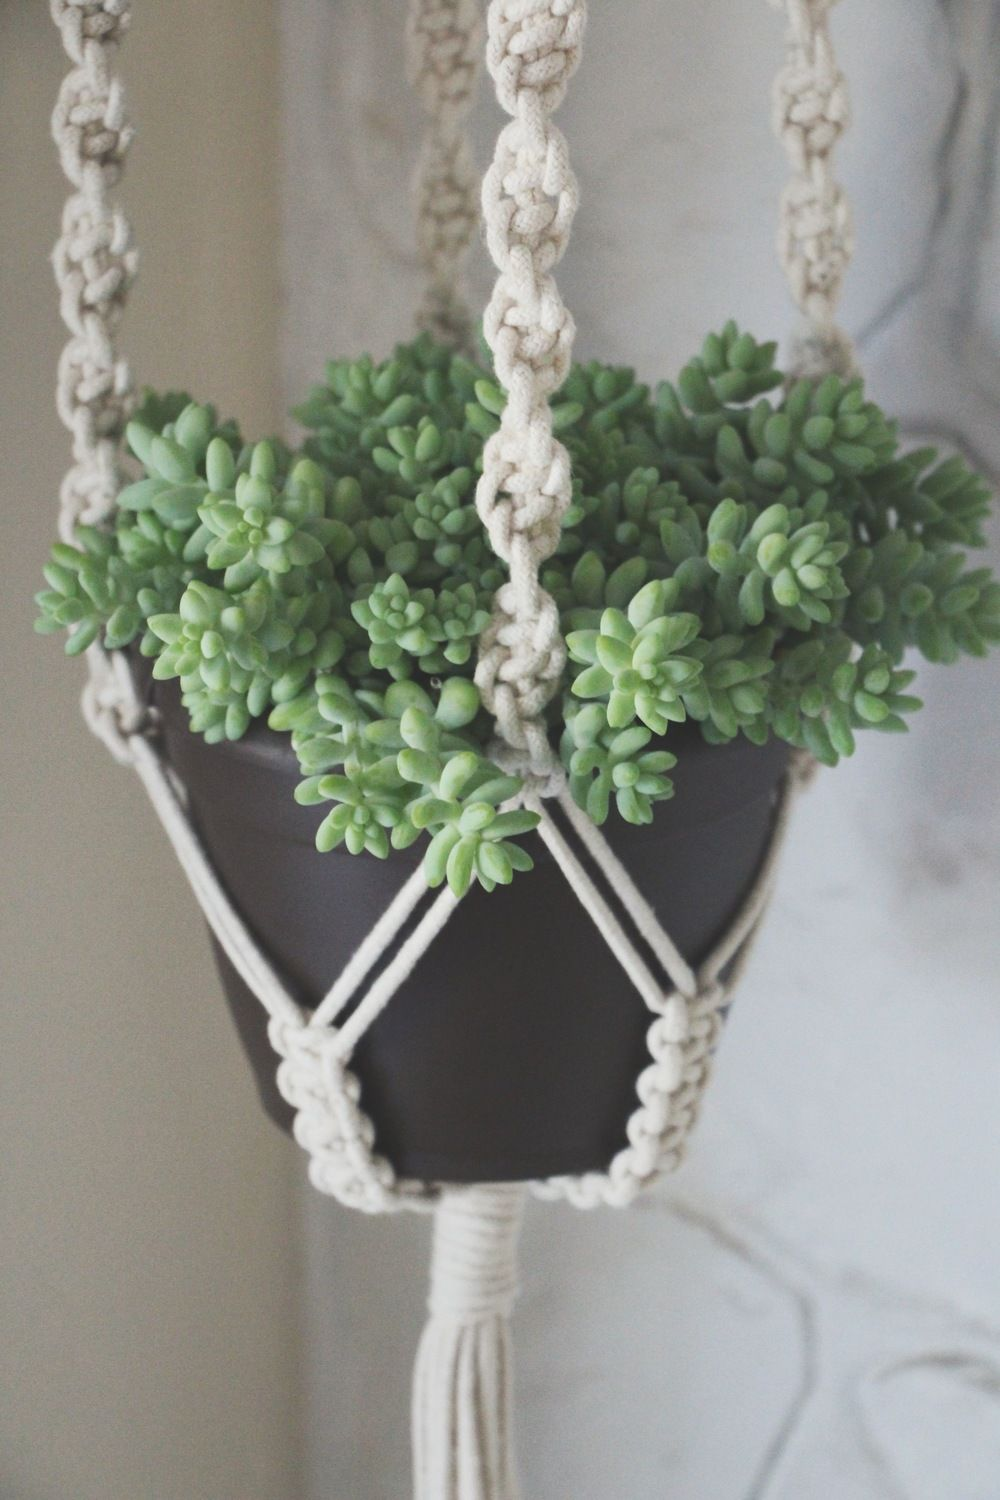 Uncategorized Macrame Patterns Plant Hanger our first giveaway leaves and plant hangers macrame hanger